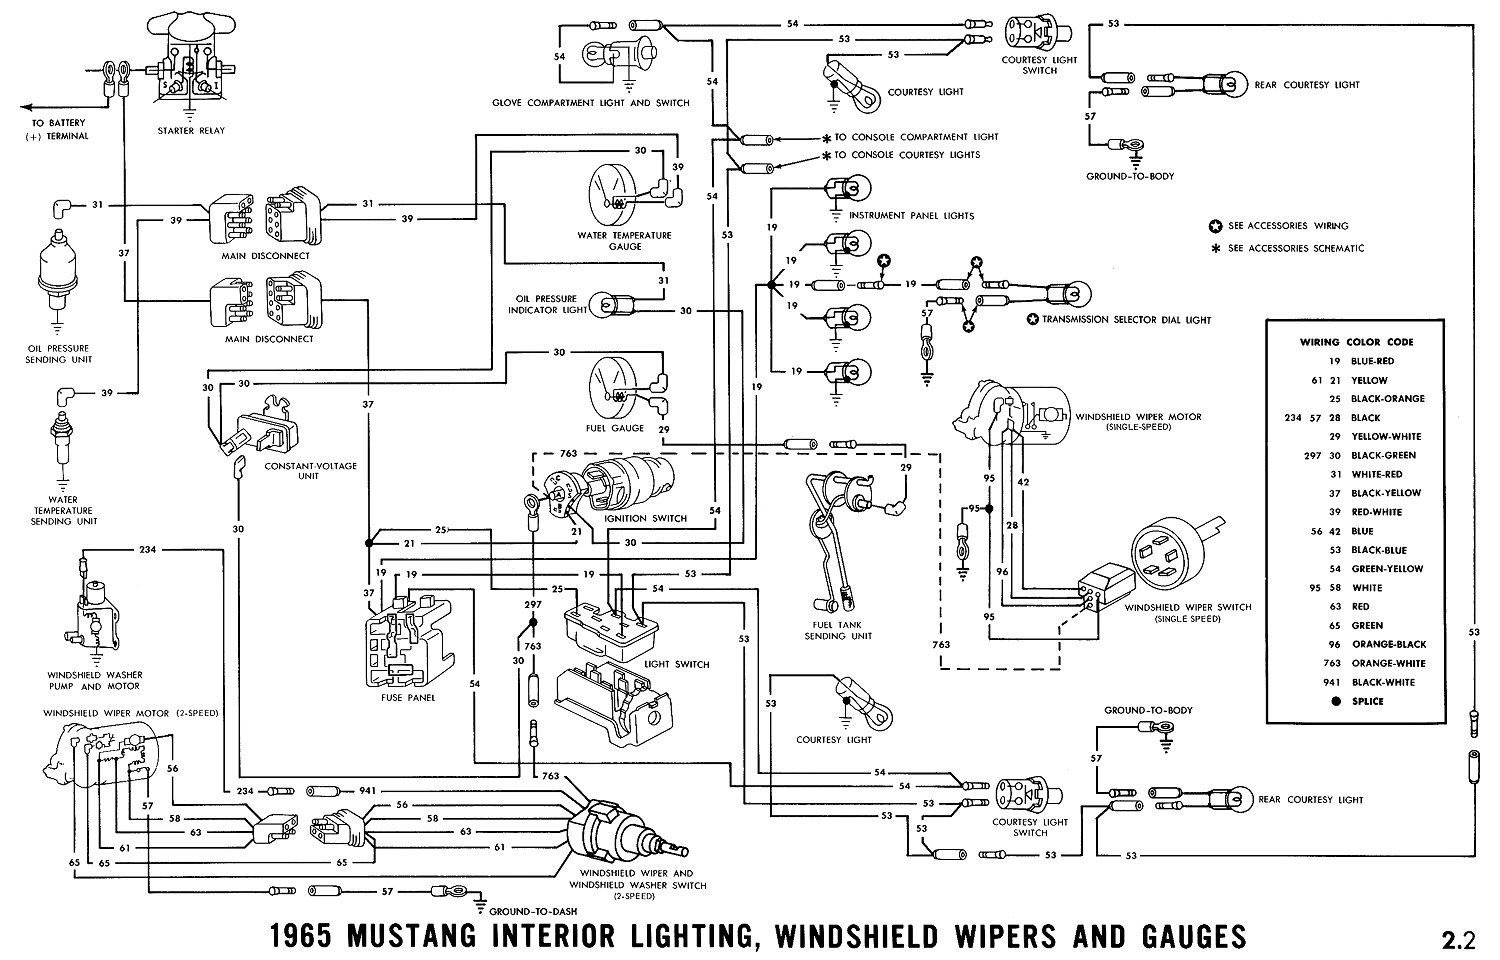 1965g engine wire diagram for 65 falcon 65 falcon hot rod \u2022 wiring engine wiring diagram 1967 mustang v8 at mifinder.co